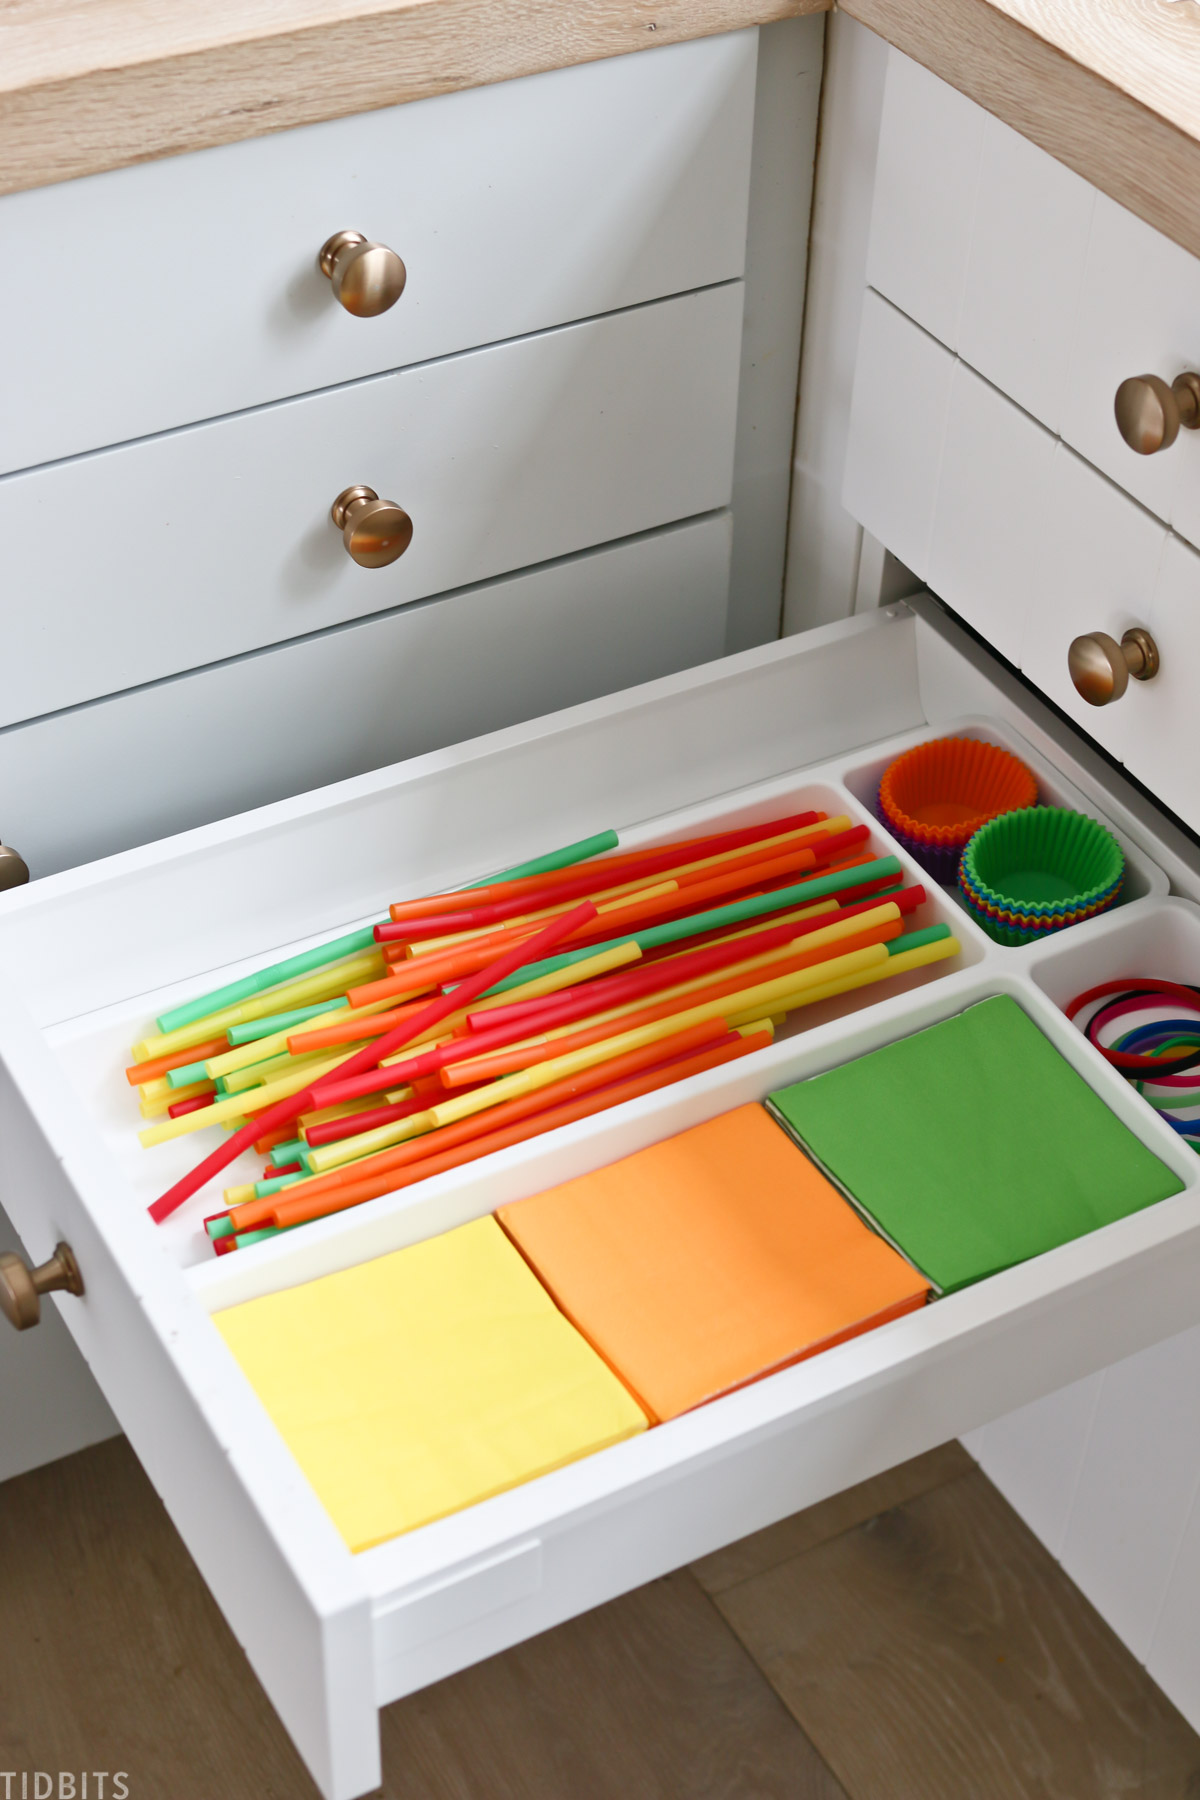 colorful straws and napkins for school lunches